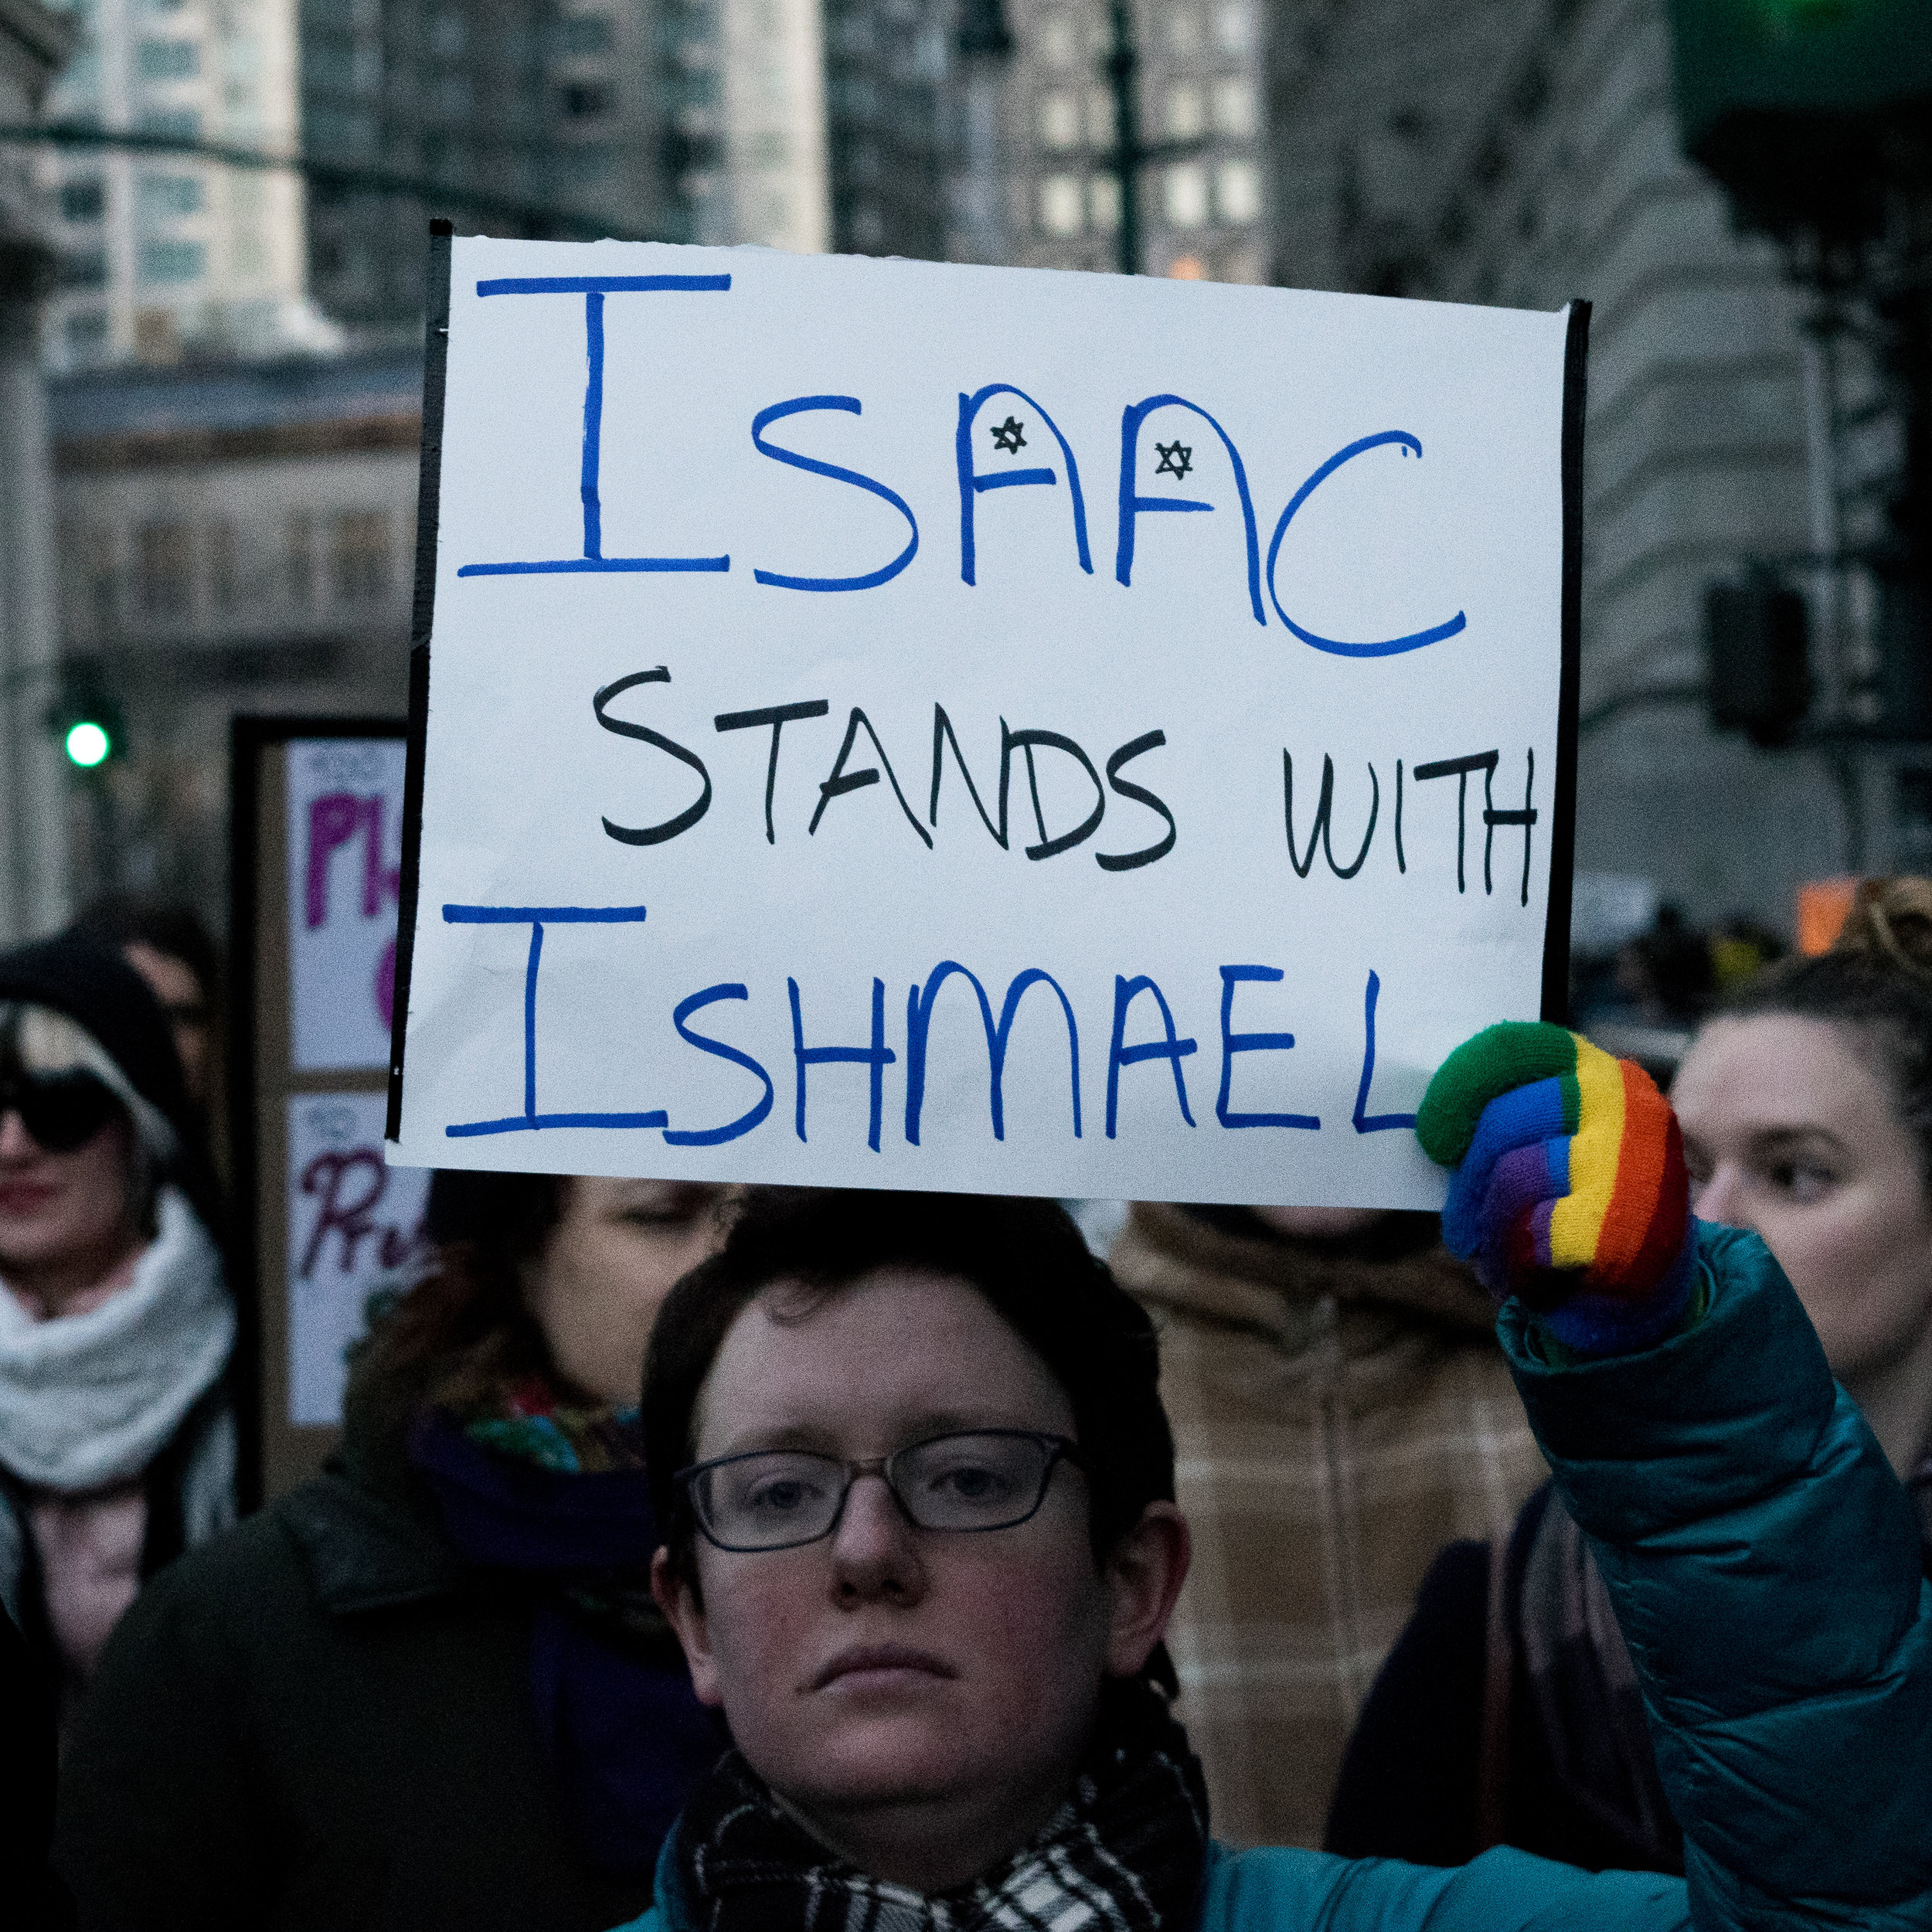 """Isaac Stands with Ishmael"""